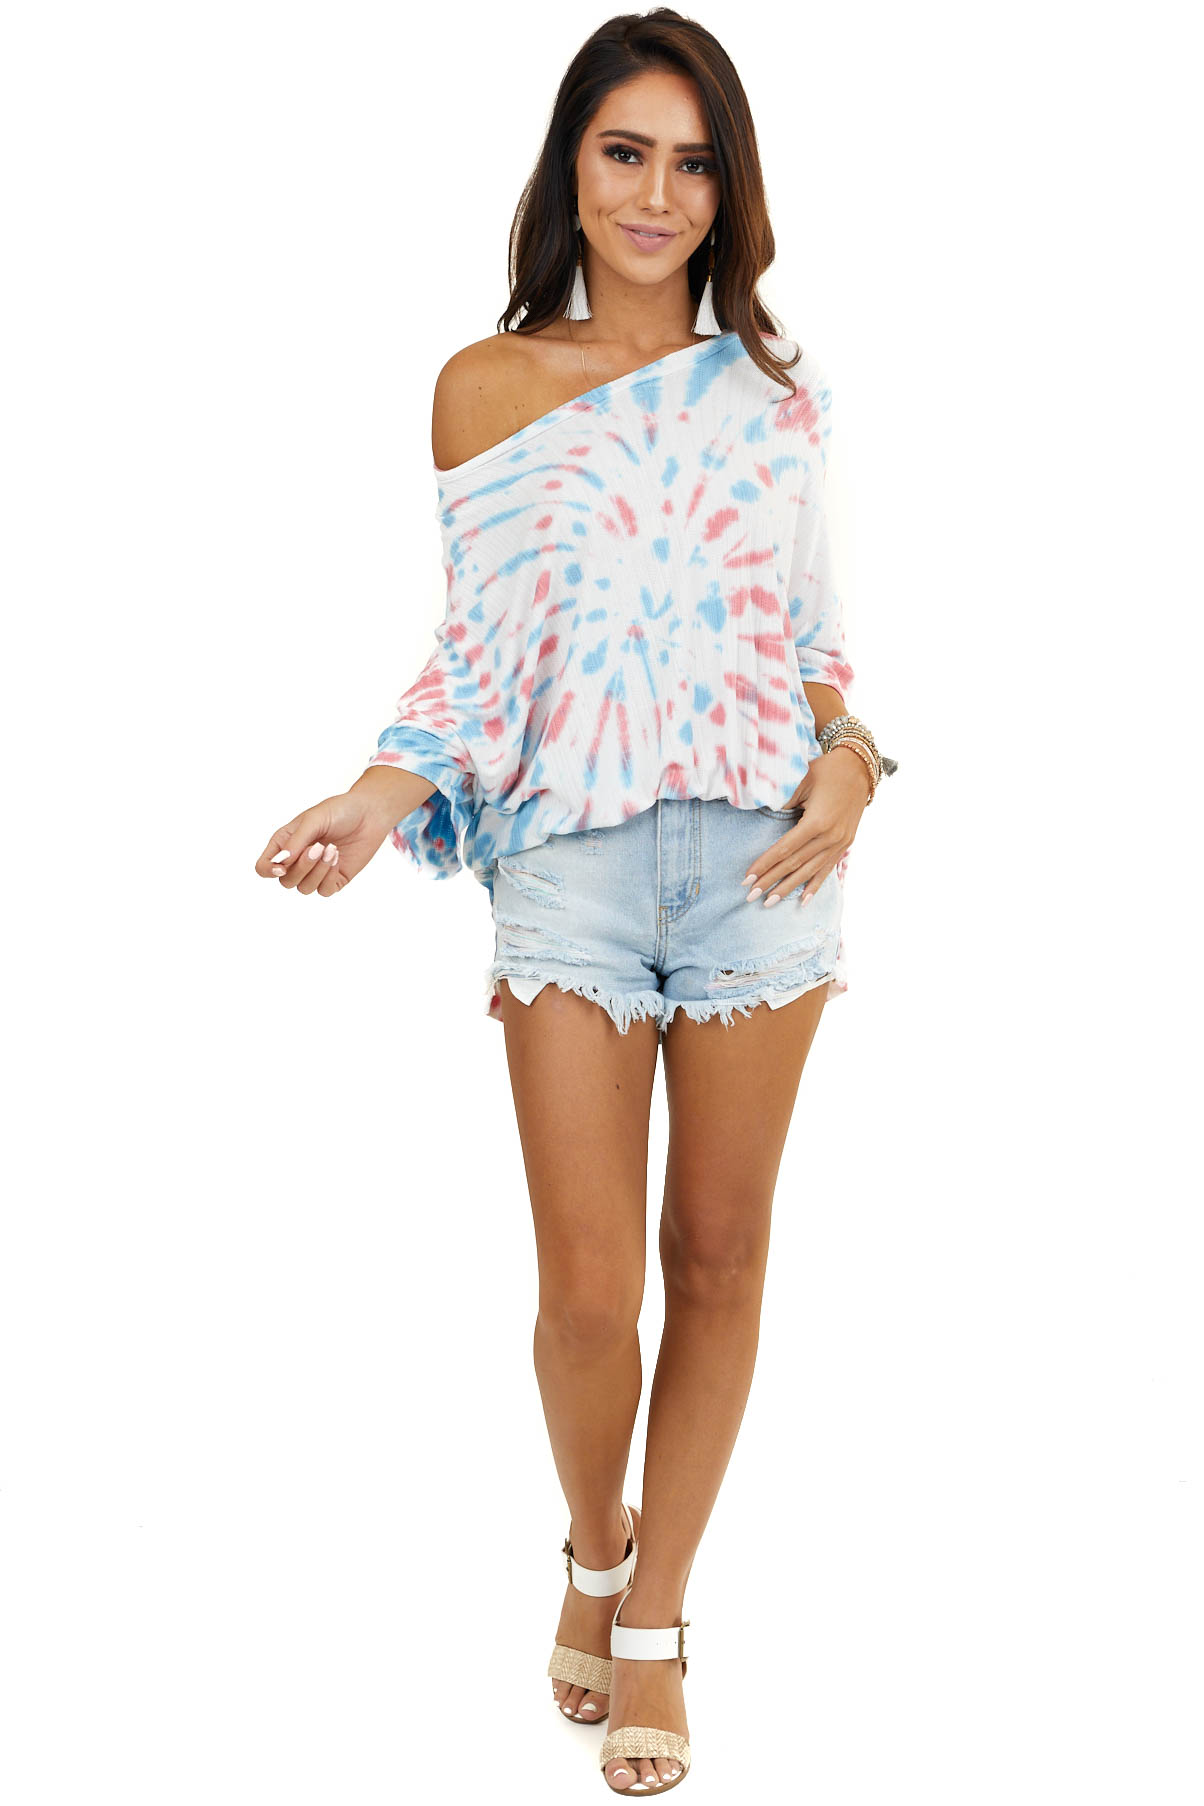 Powder Blue and Faded Red Tie Dye Short Sleeve Top